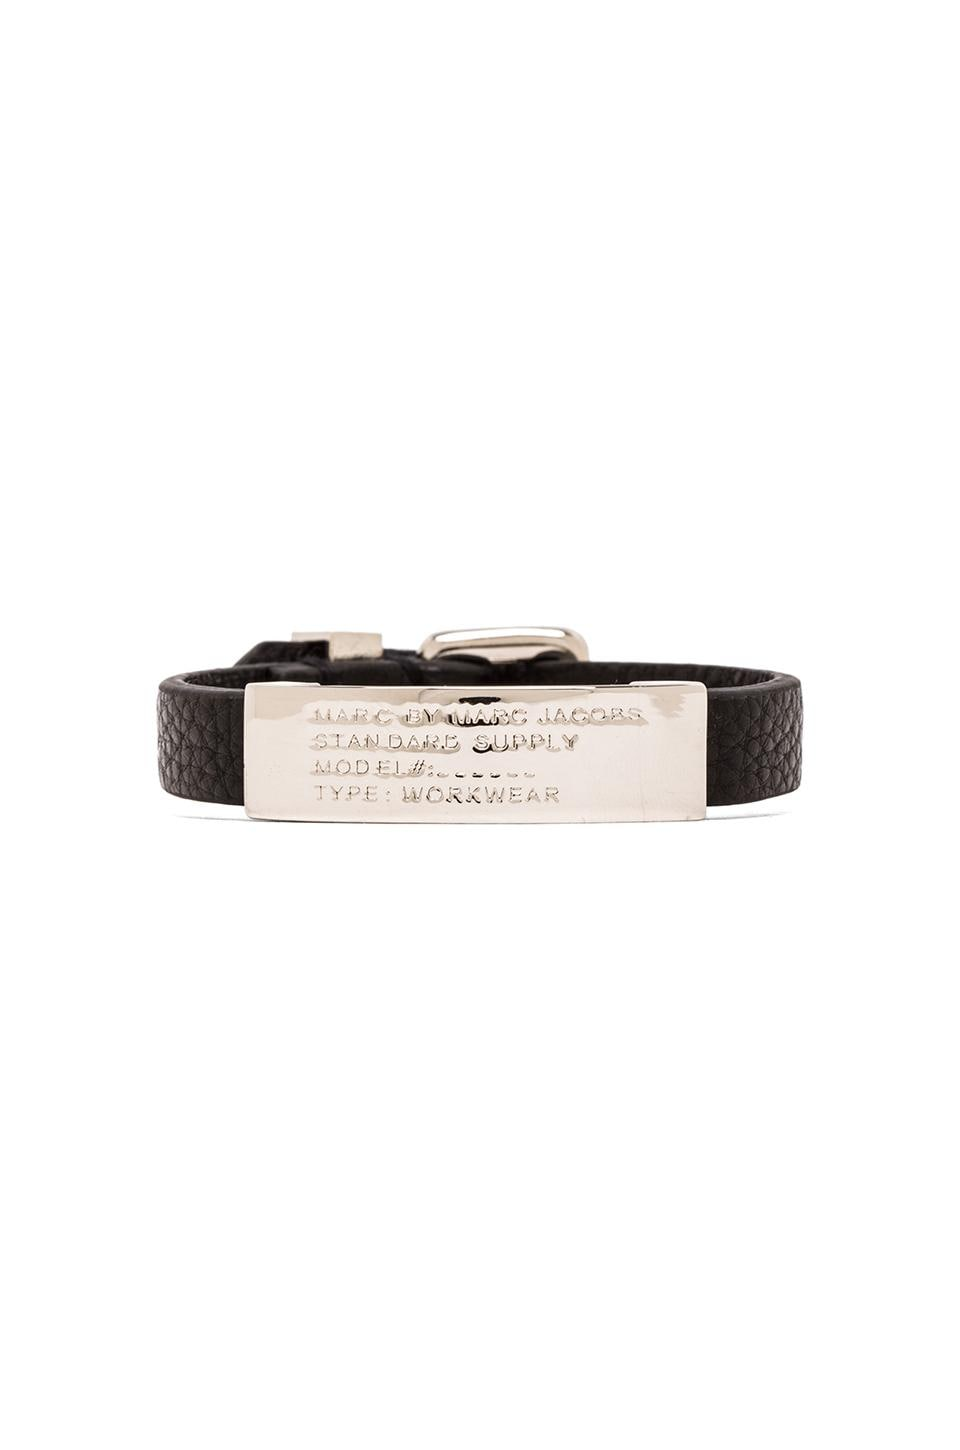 Marc by Marc Jacobs Standard Supply ID Bracelet in Black Argento